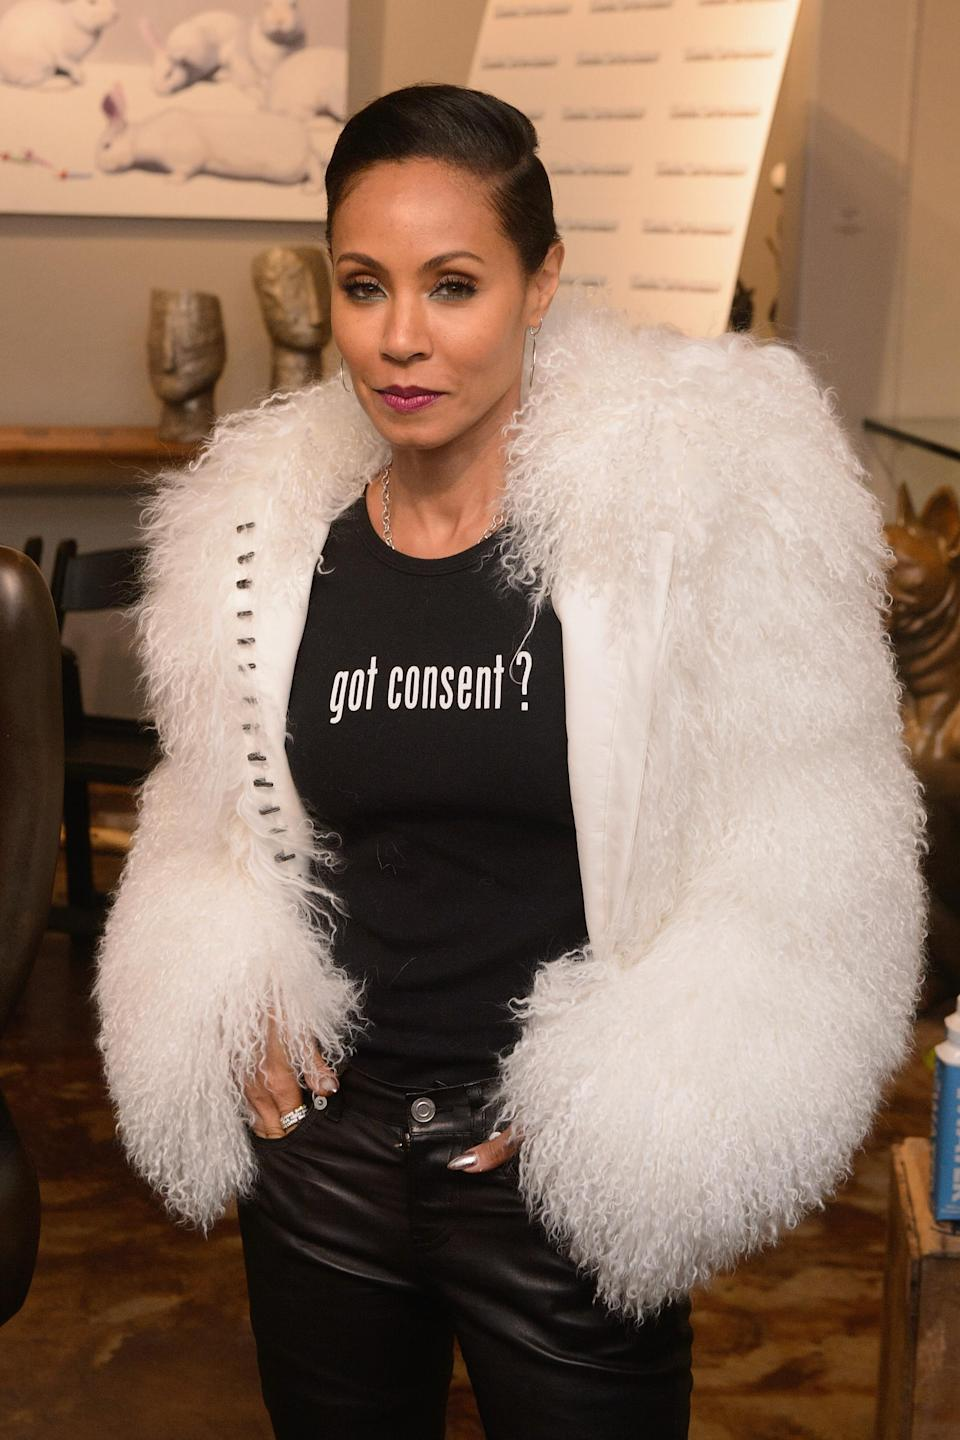 Jada Pinkett Smith at an event for the Will and Jada Smith Family Foundation in January. (Photo: Getty Images)